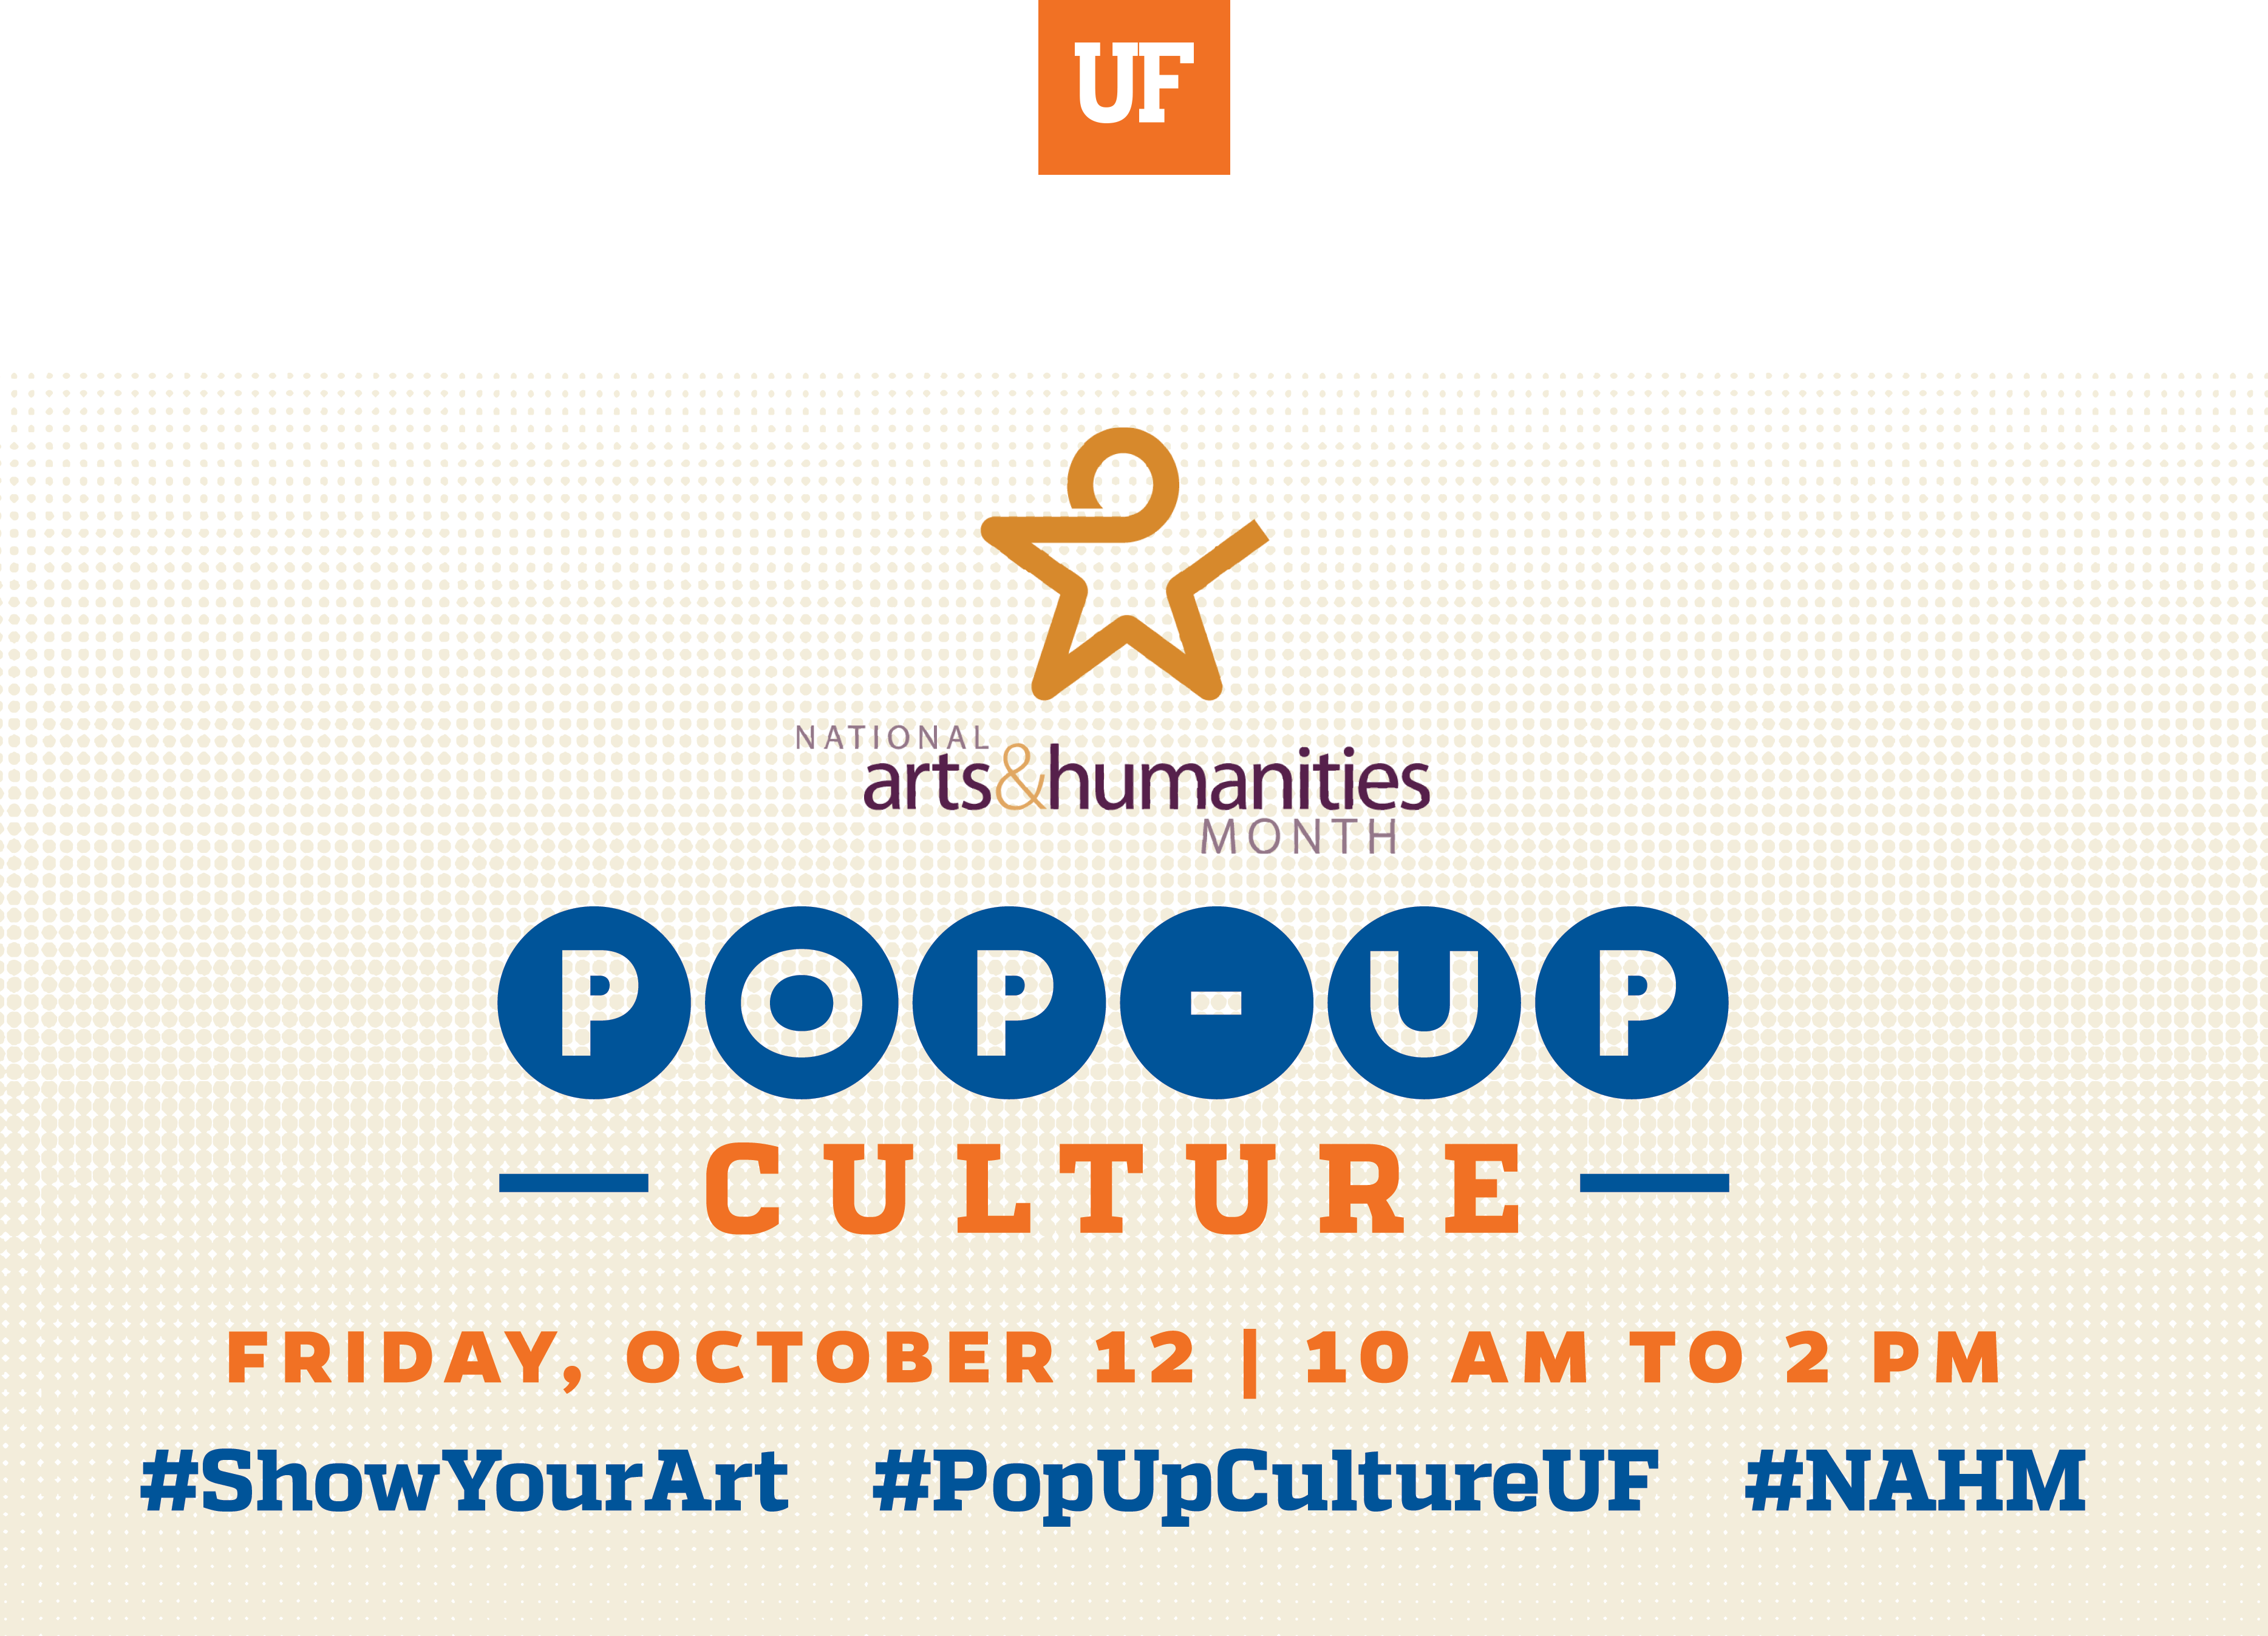 Uf Calendar Of Events.Uf Pop Up Culture Americans For The Arts